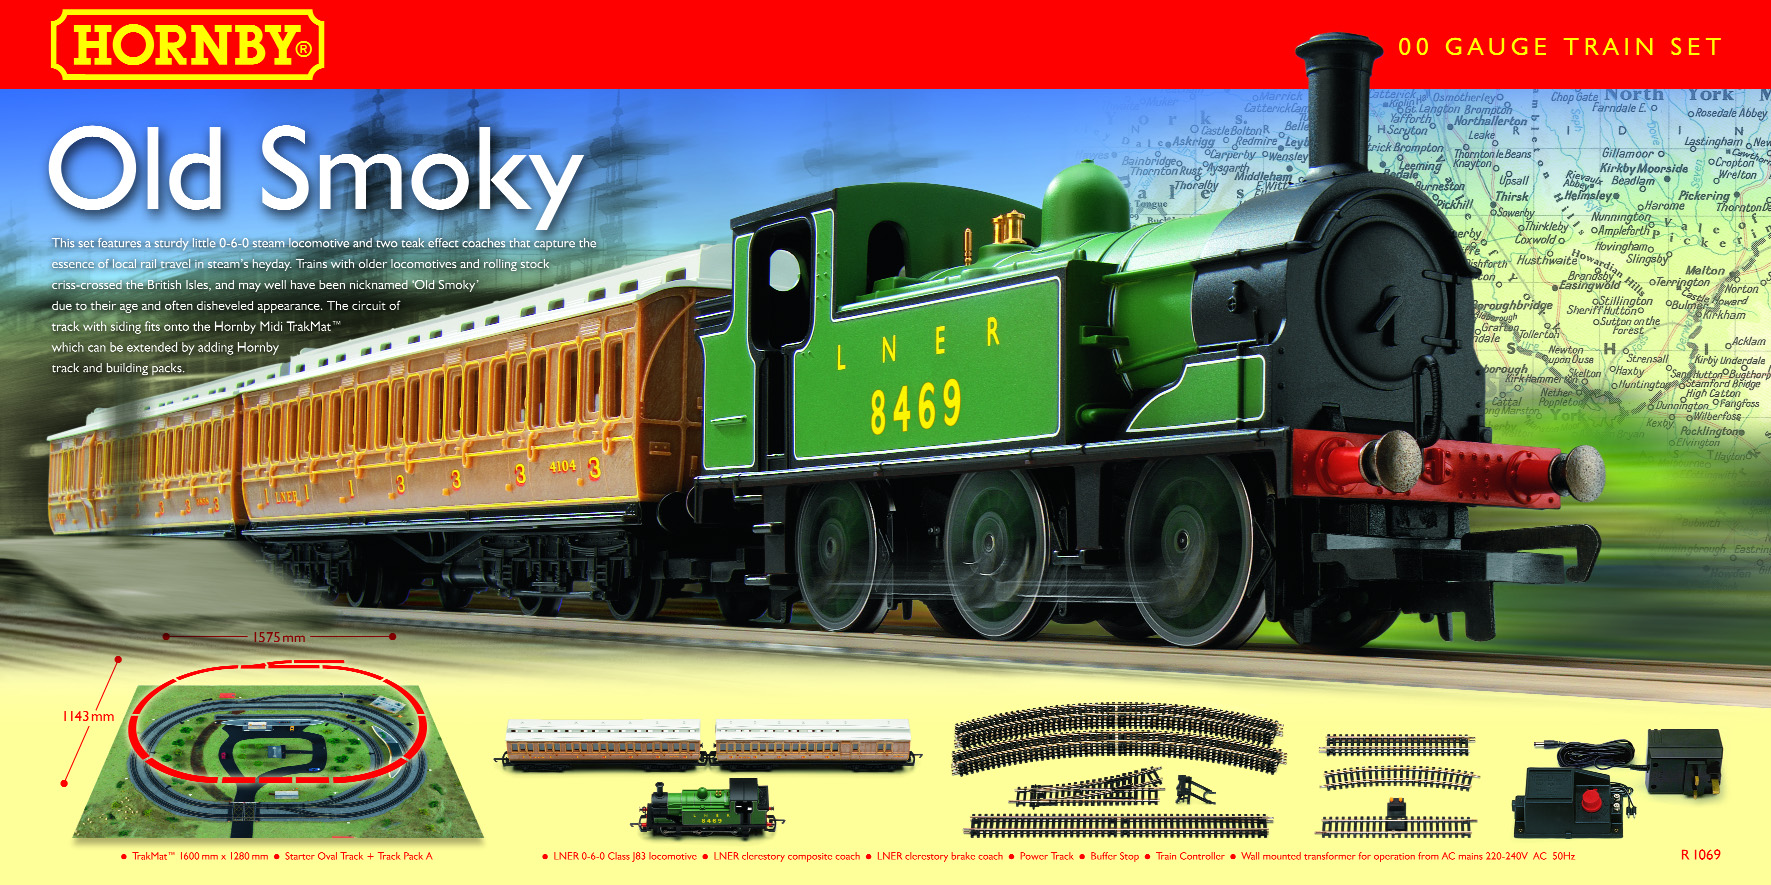 Hornby 2007 Product information - Train Sets